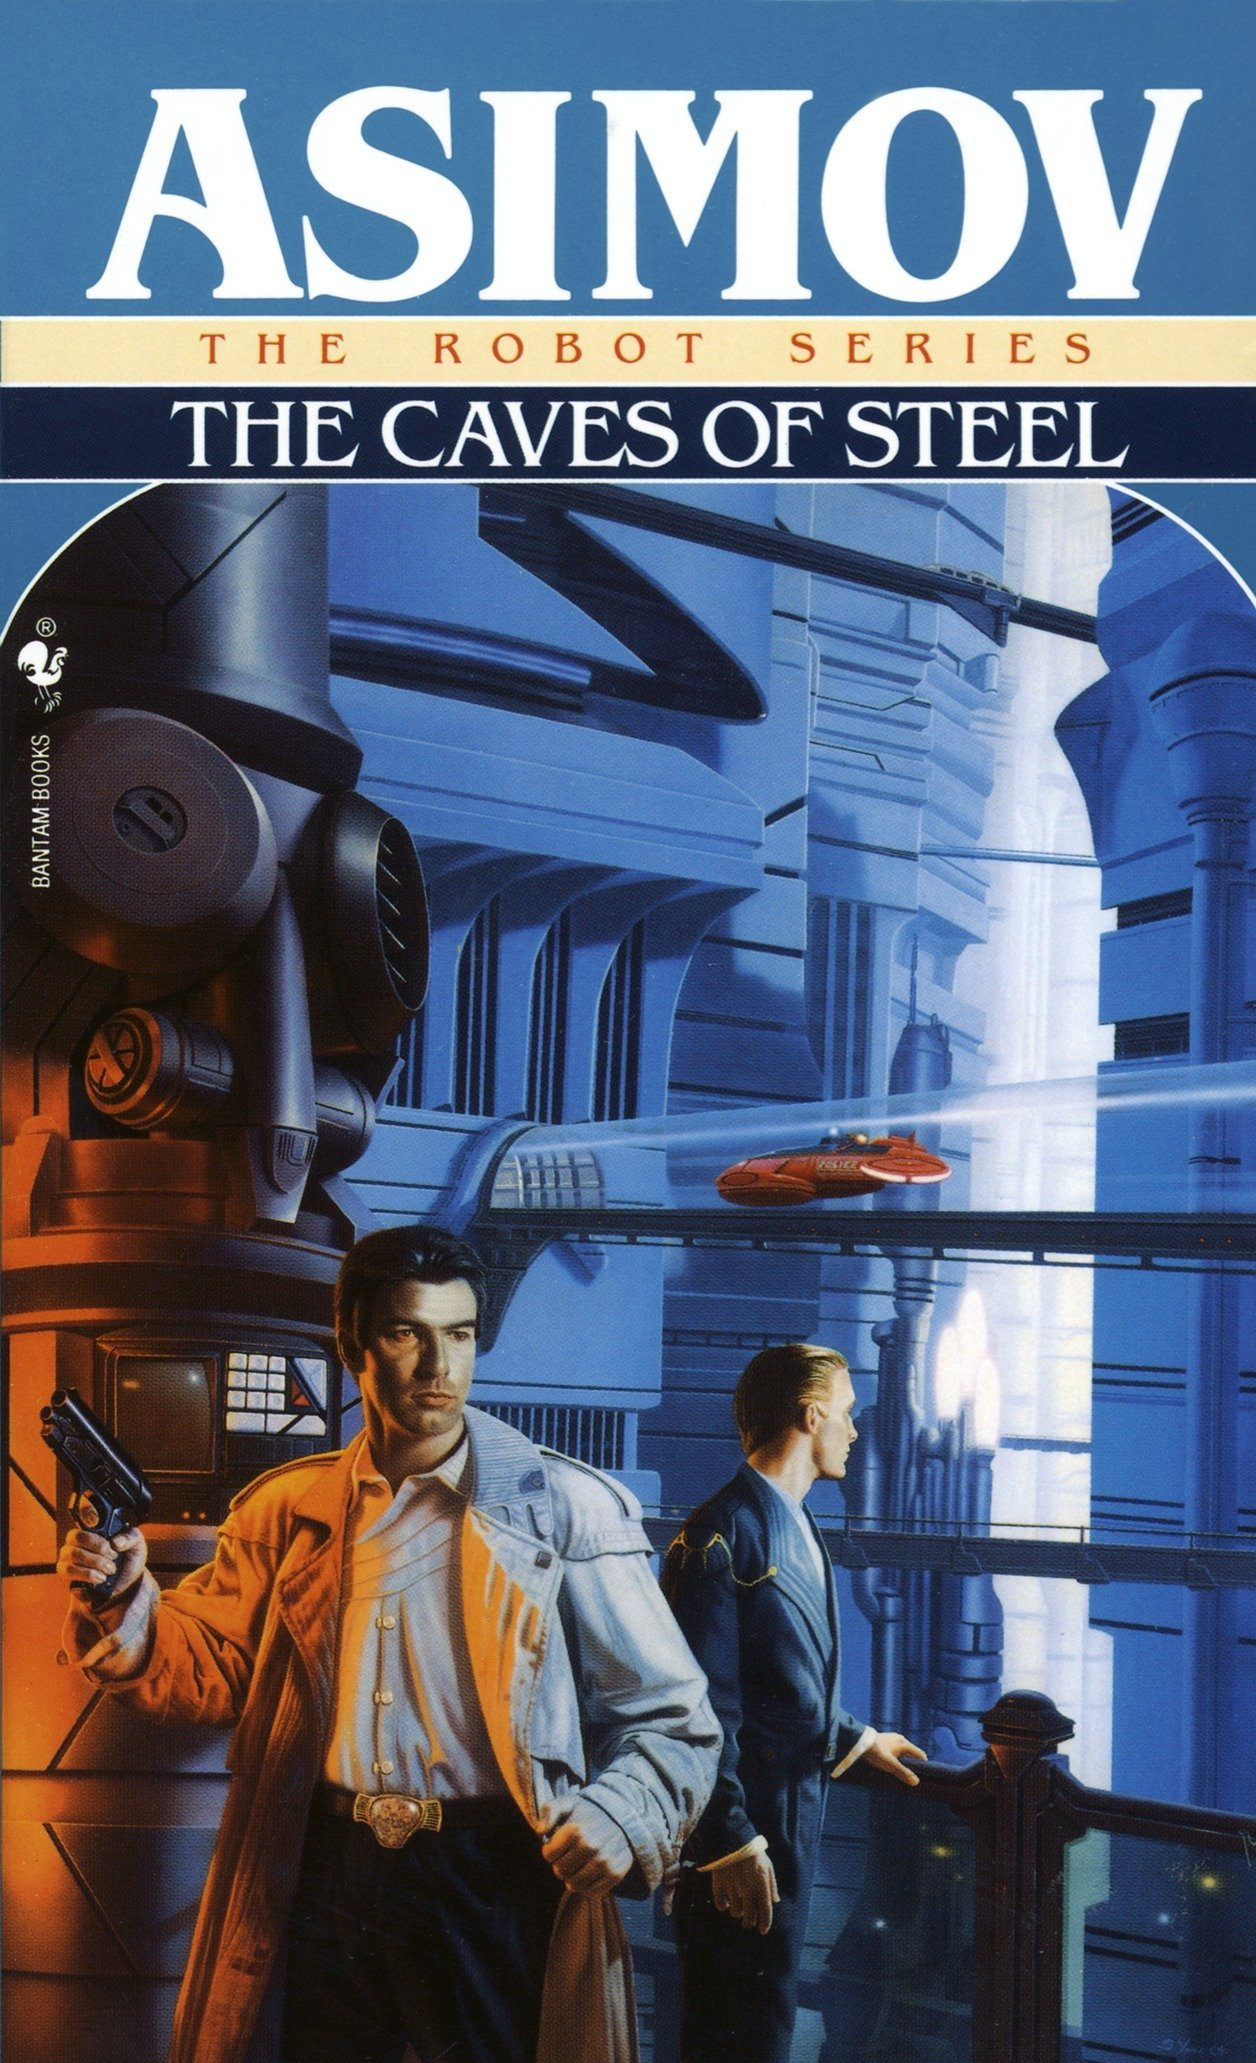 'The Caves of Steel' by Isaac Asimov.